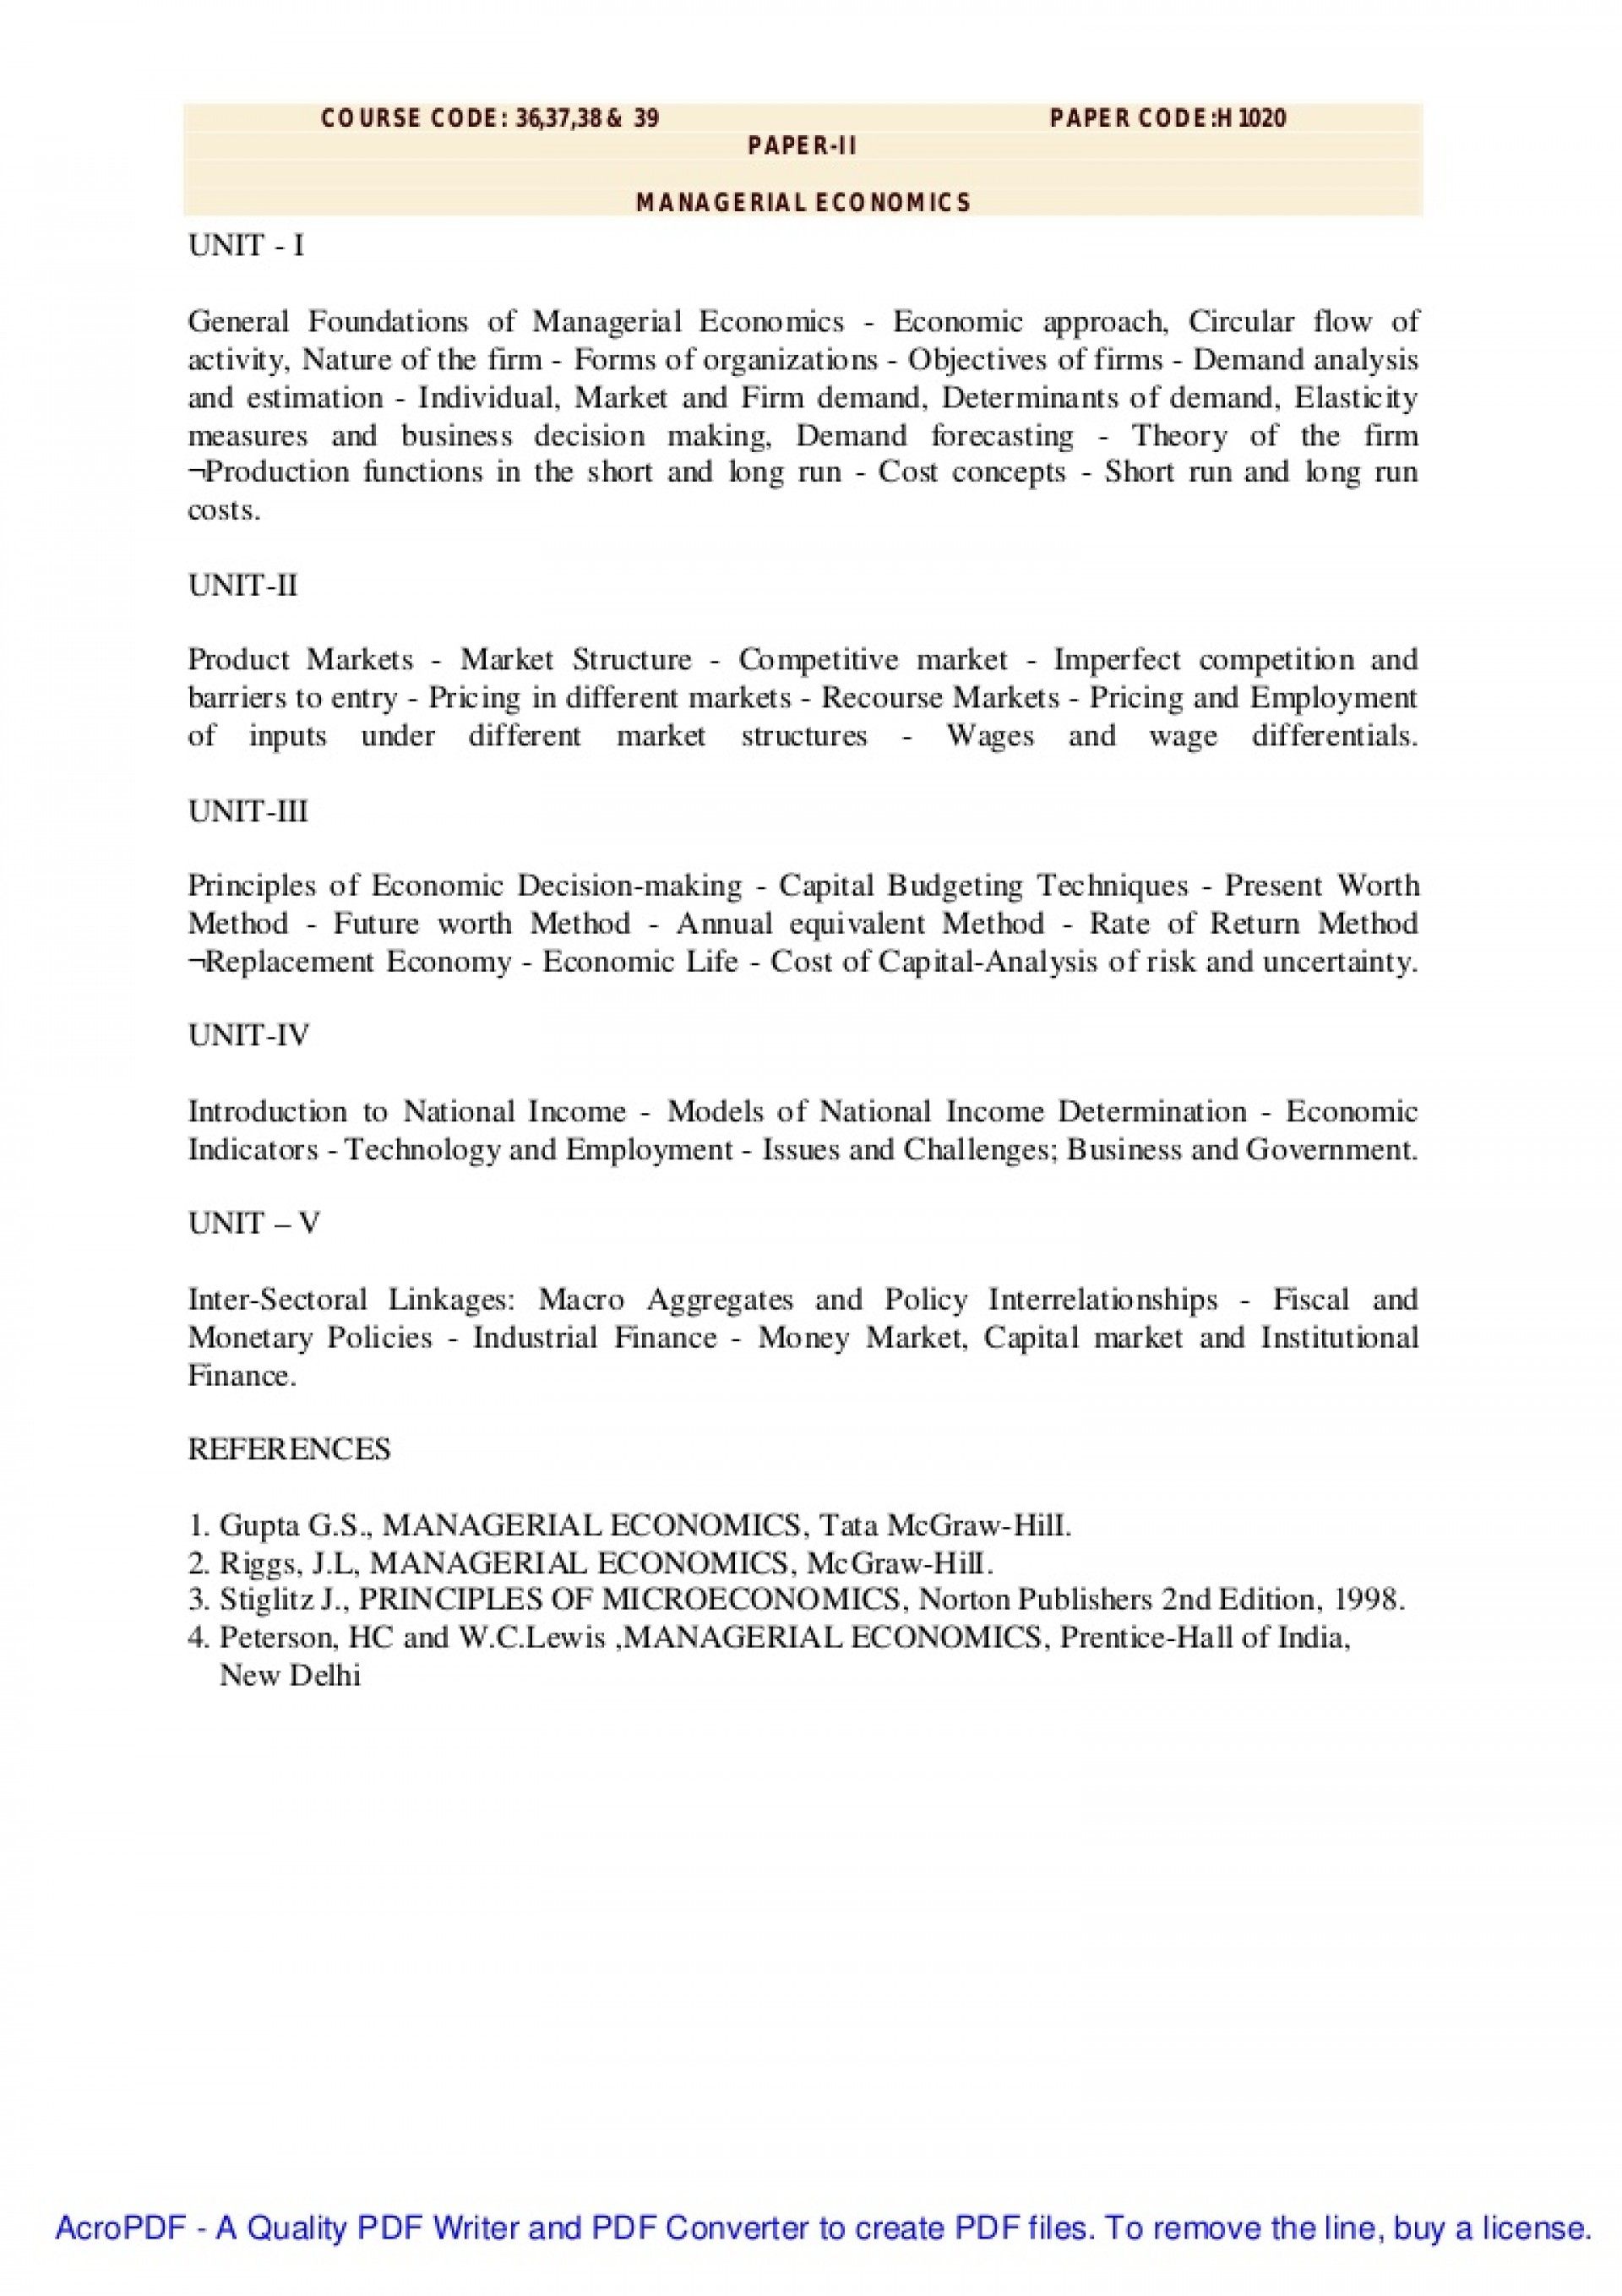 001 Research Paper Managerialeconomics Phpapp02 Thumbnail Managerial Economic Imposing Topics 1920